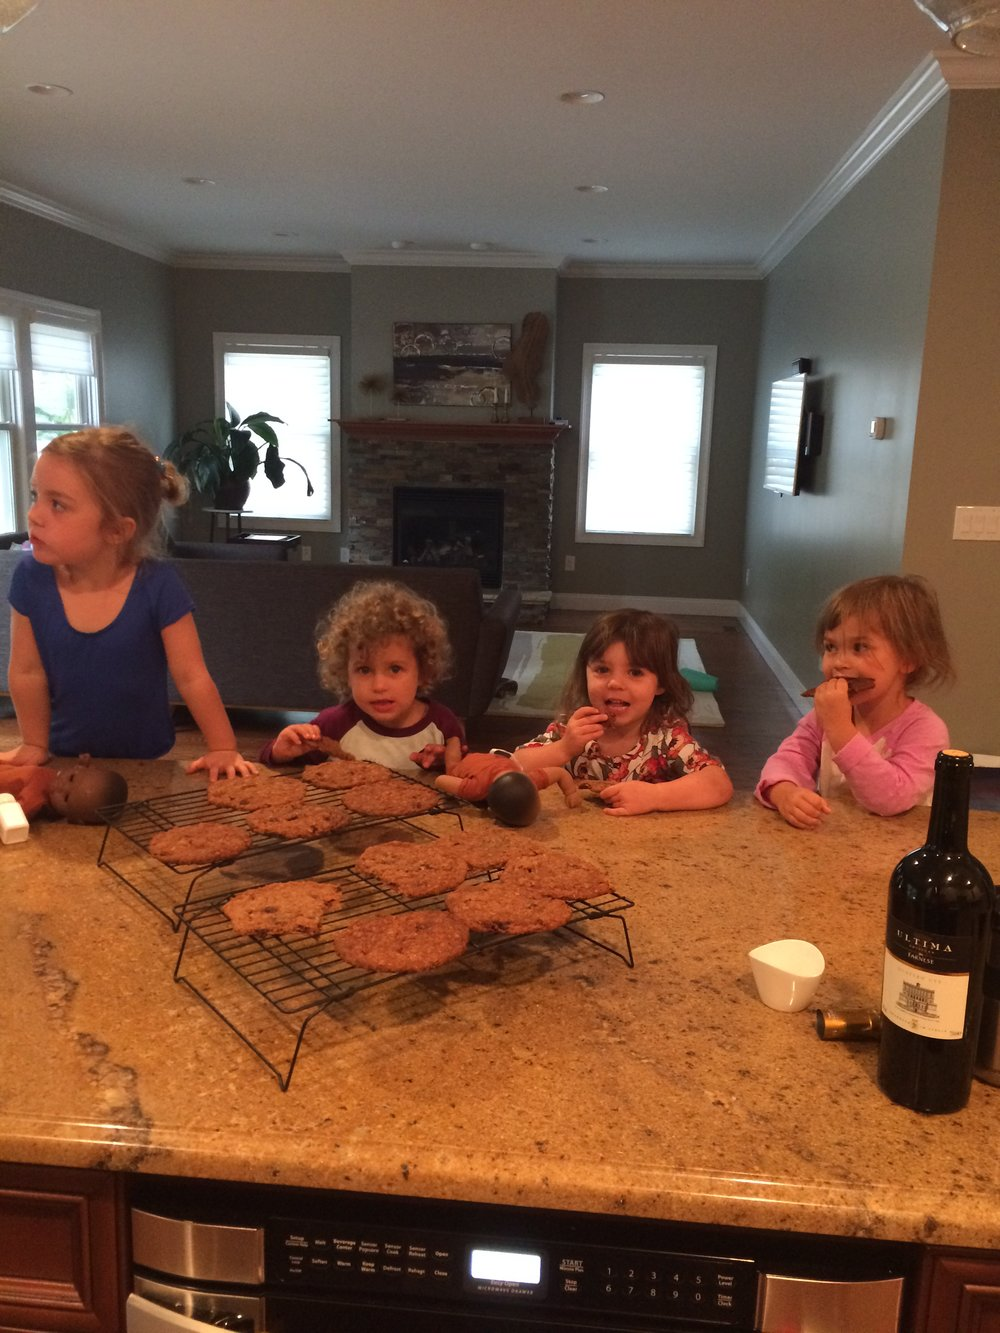 Our kids eating Erin's giant oatmeal cookies